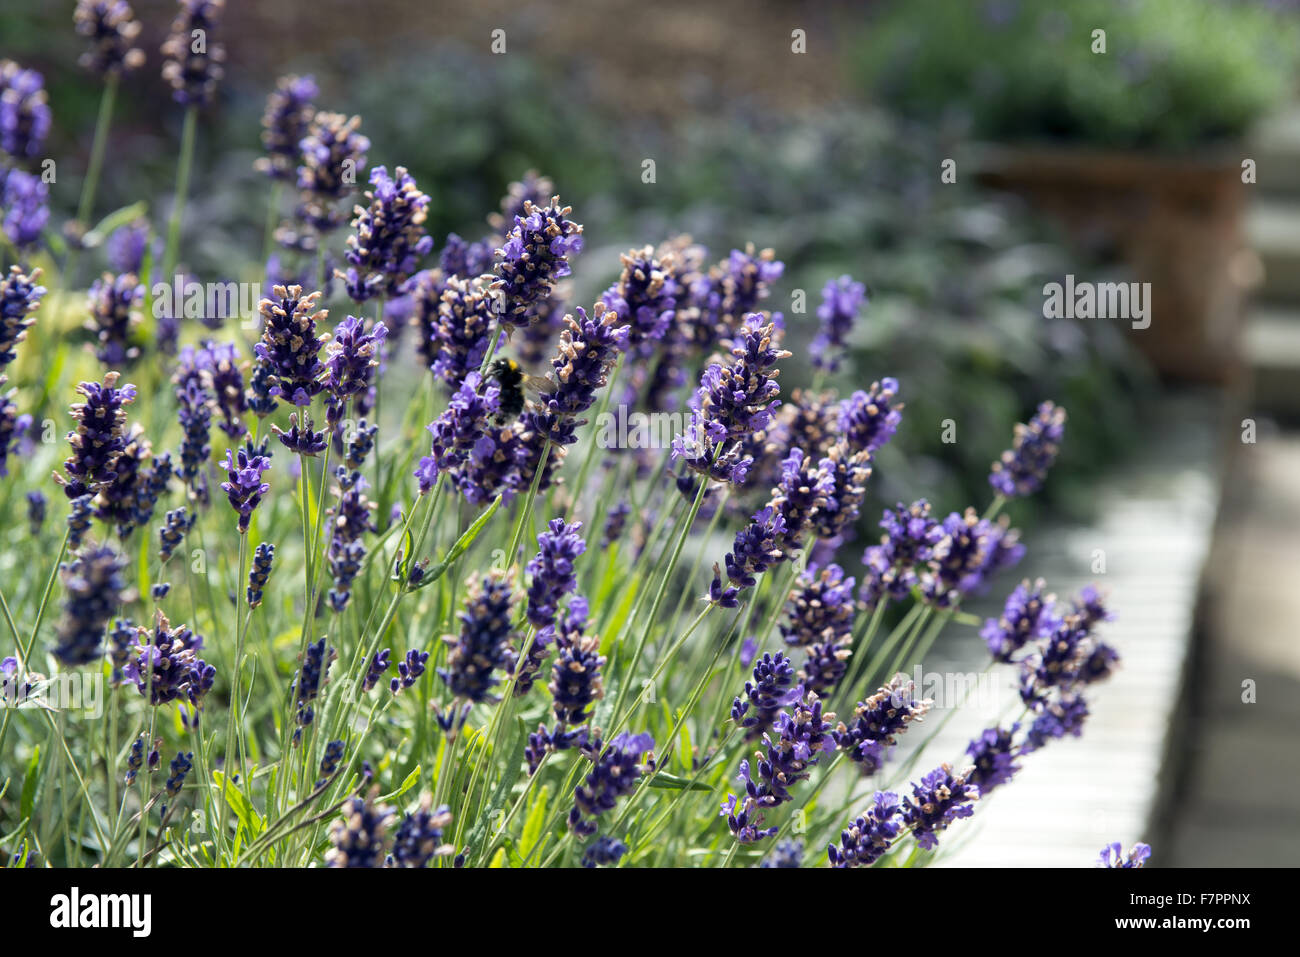 Lavender growing in the garden at Plas Newydd Country House and Gardens, Anglesey, Wales. This fine 18th century Stock Photo